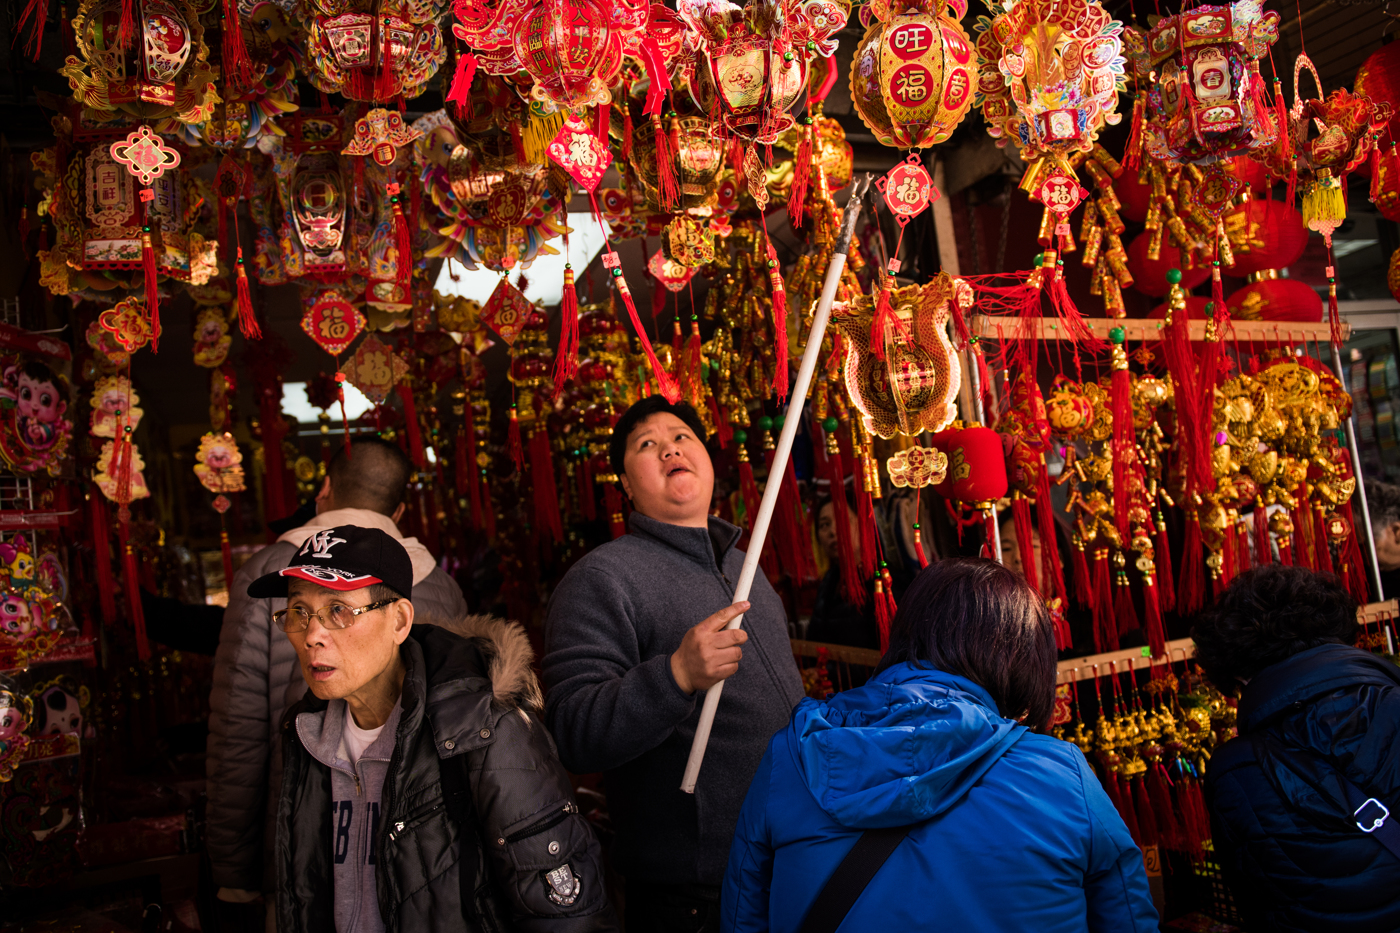 A man moves lanterns around a store in preparation for Chinese New Year in the Chinatown neighborhood of Manhattan in New York, NY.